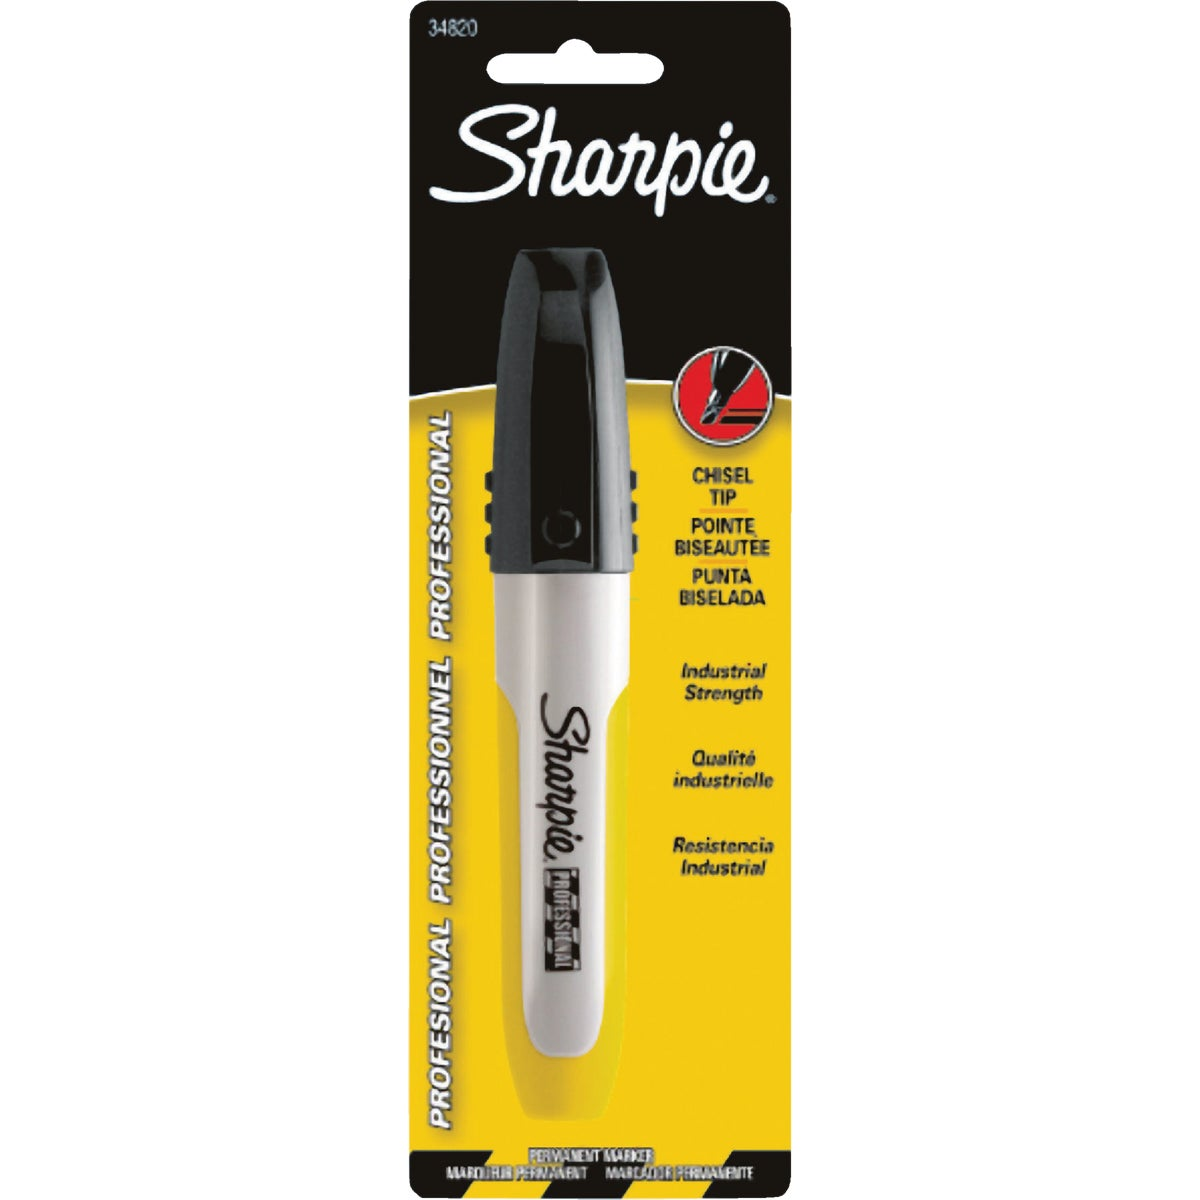 BLK PROFESSIONAL SHARPIE